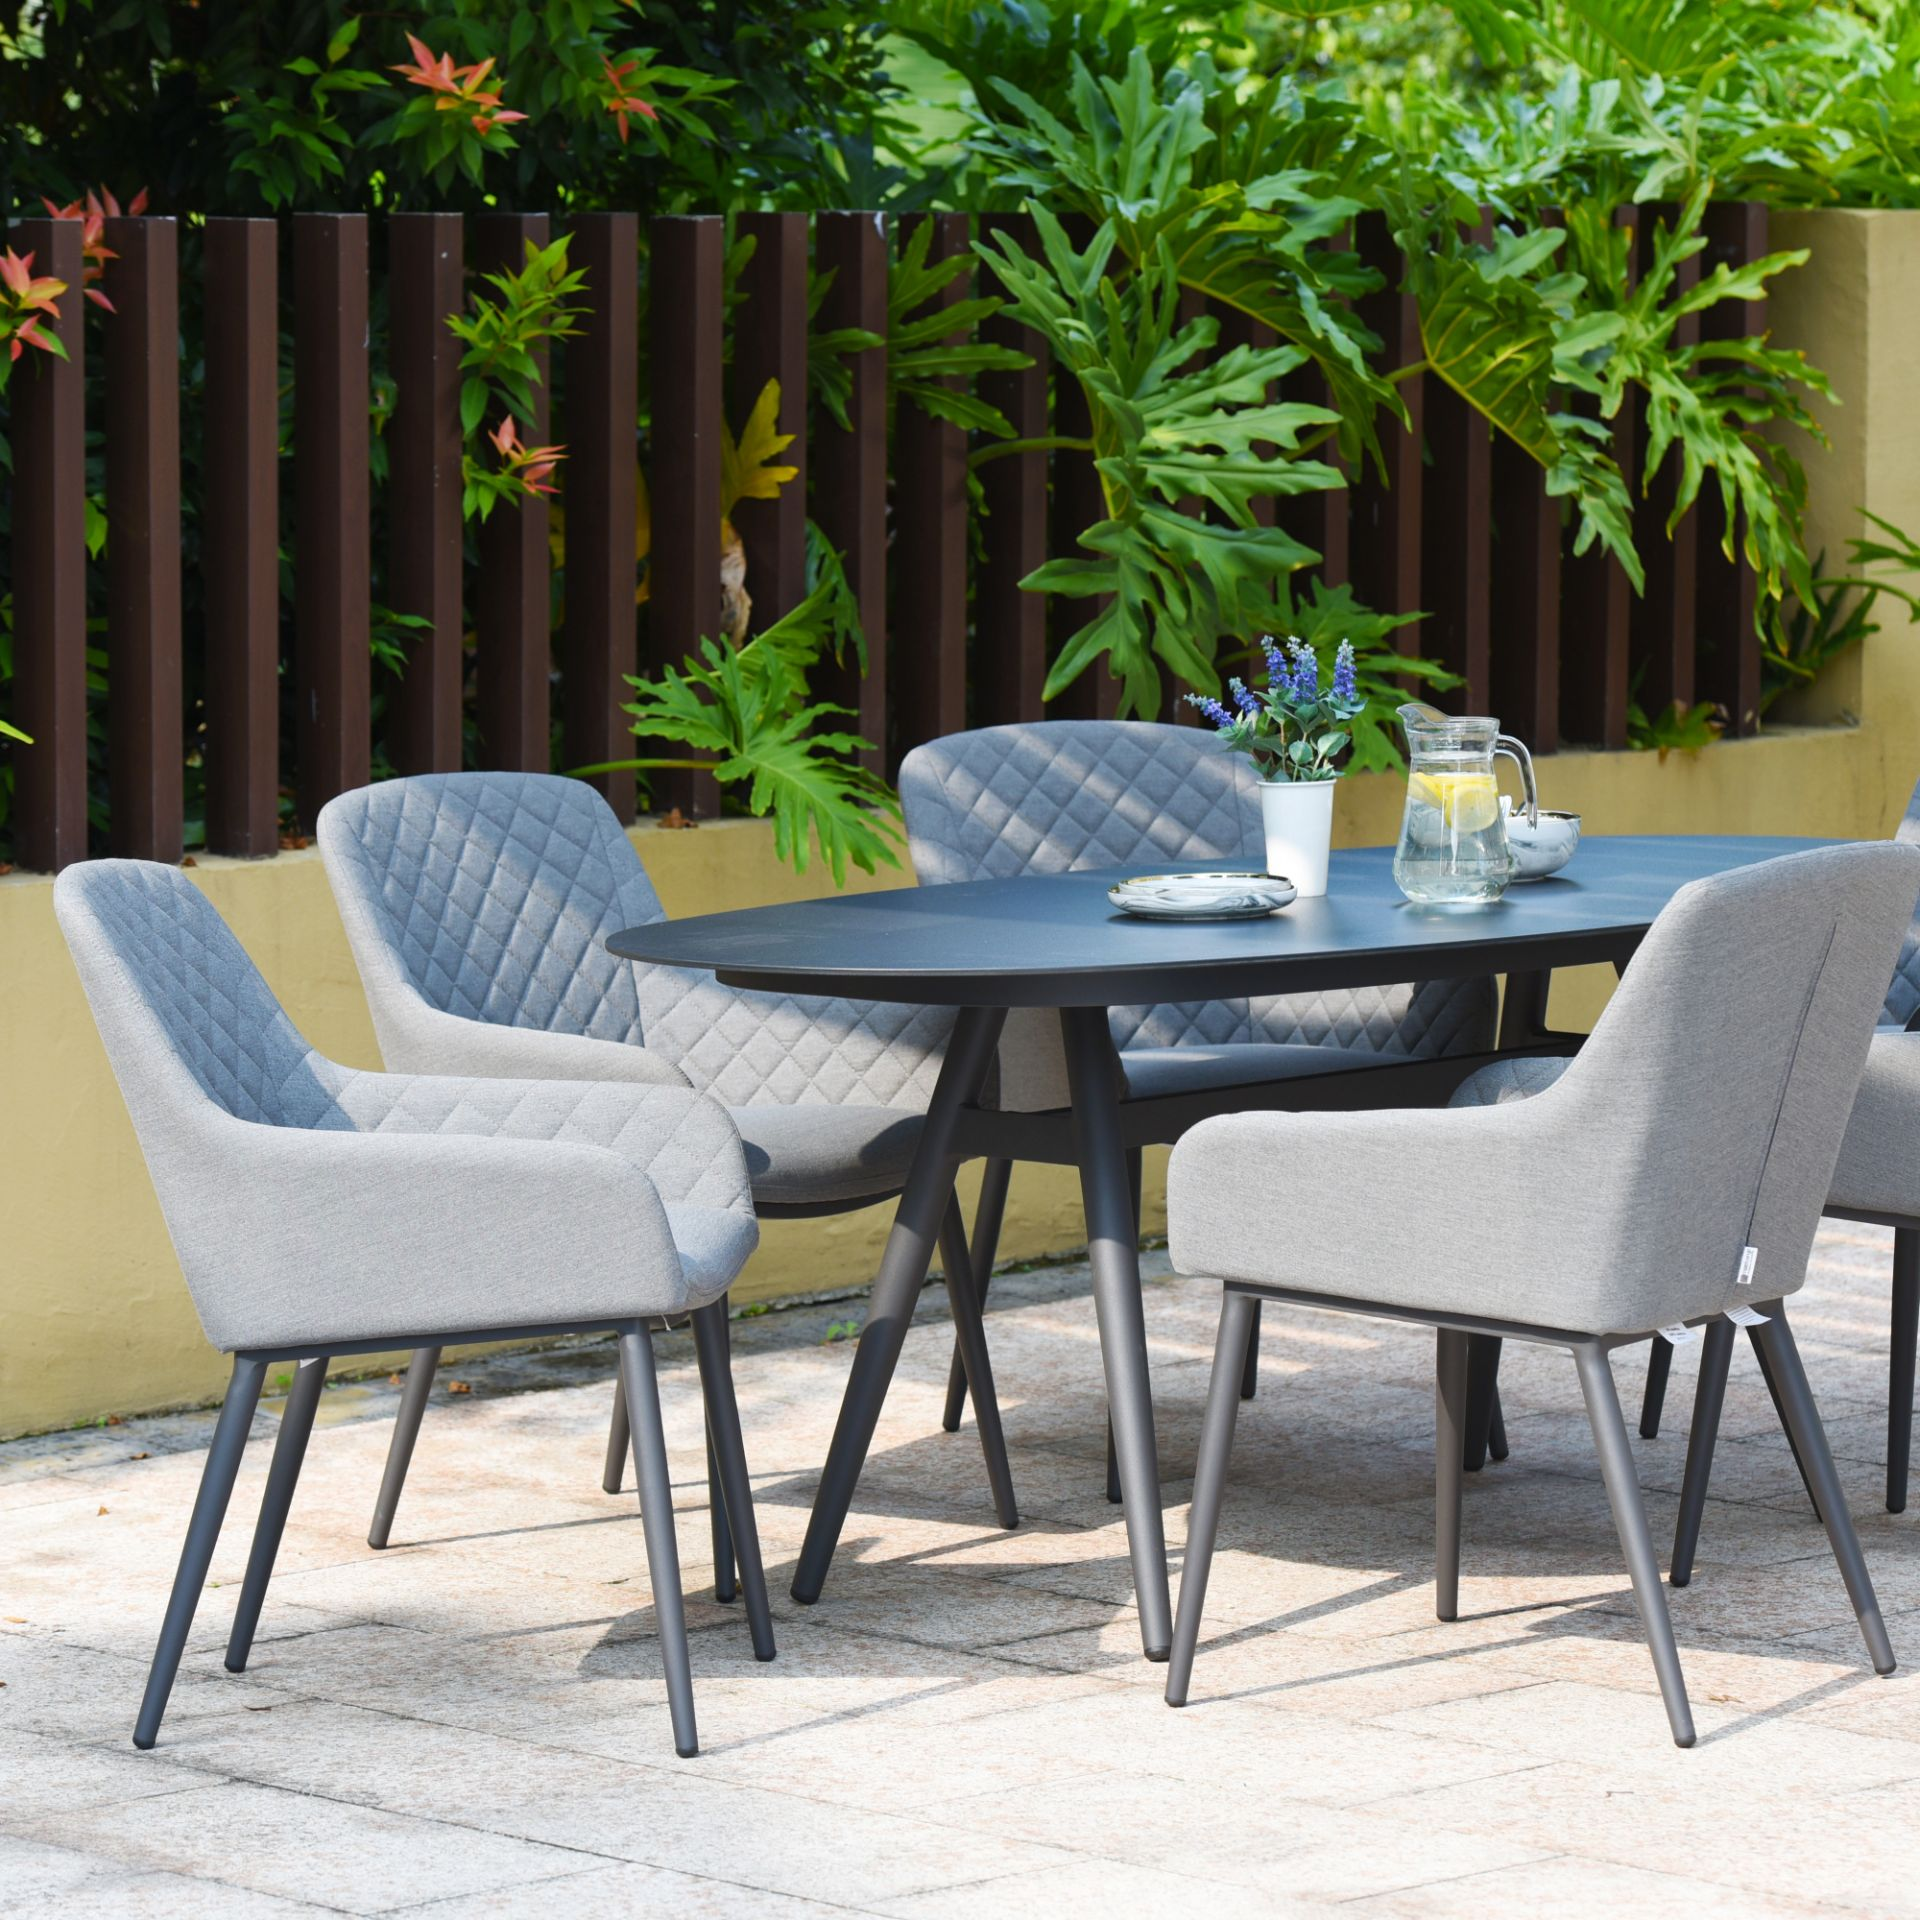 Lot 45 - Zest 6 Seat Oval Outdoor Fabric Dining Set (Flanelle) *BRAND NEW*